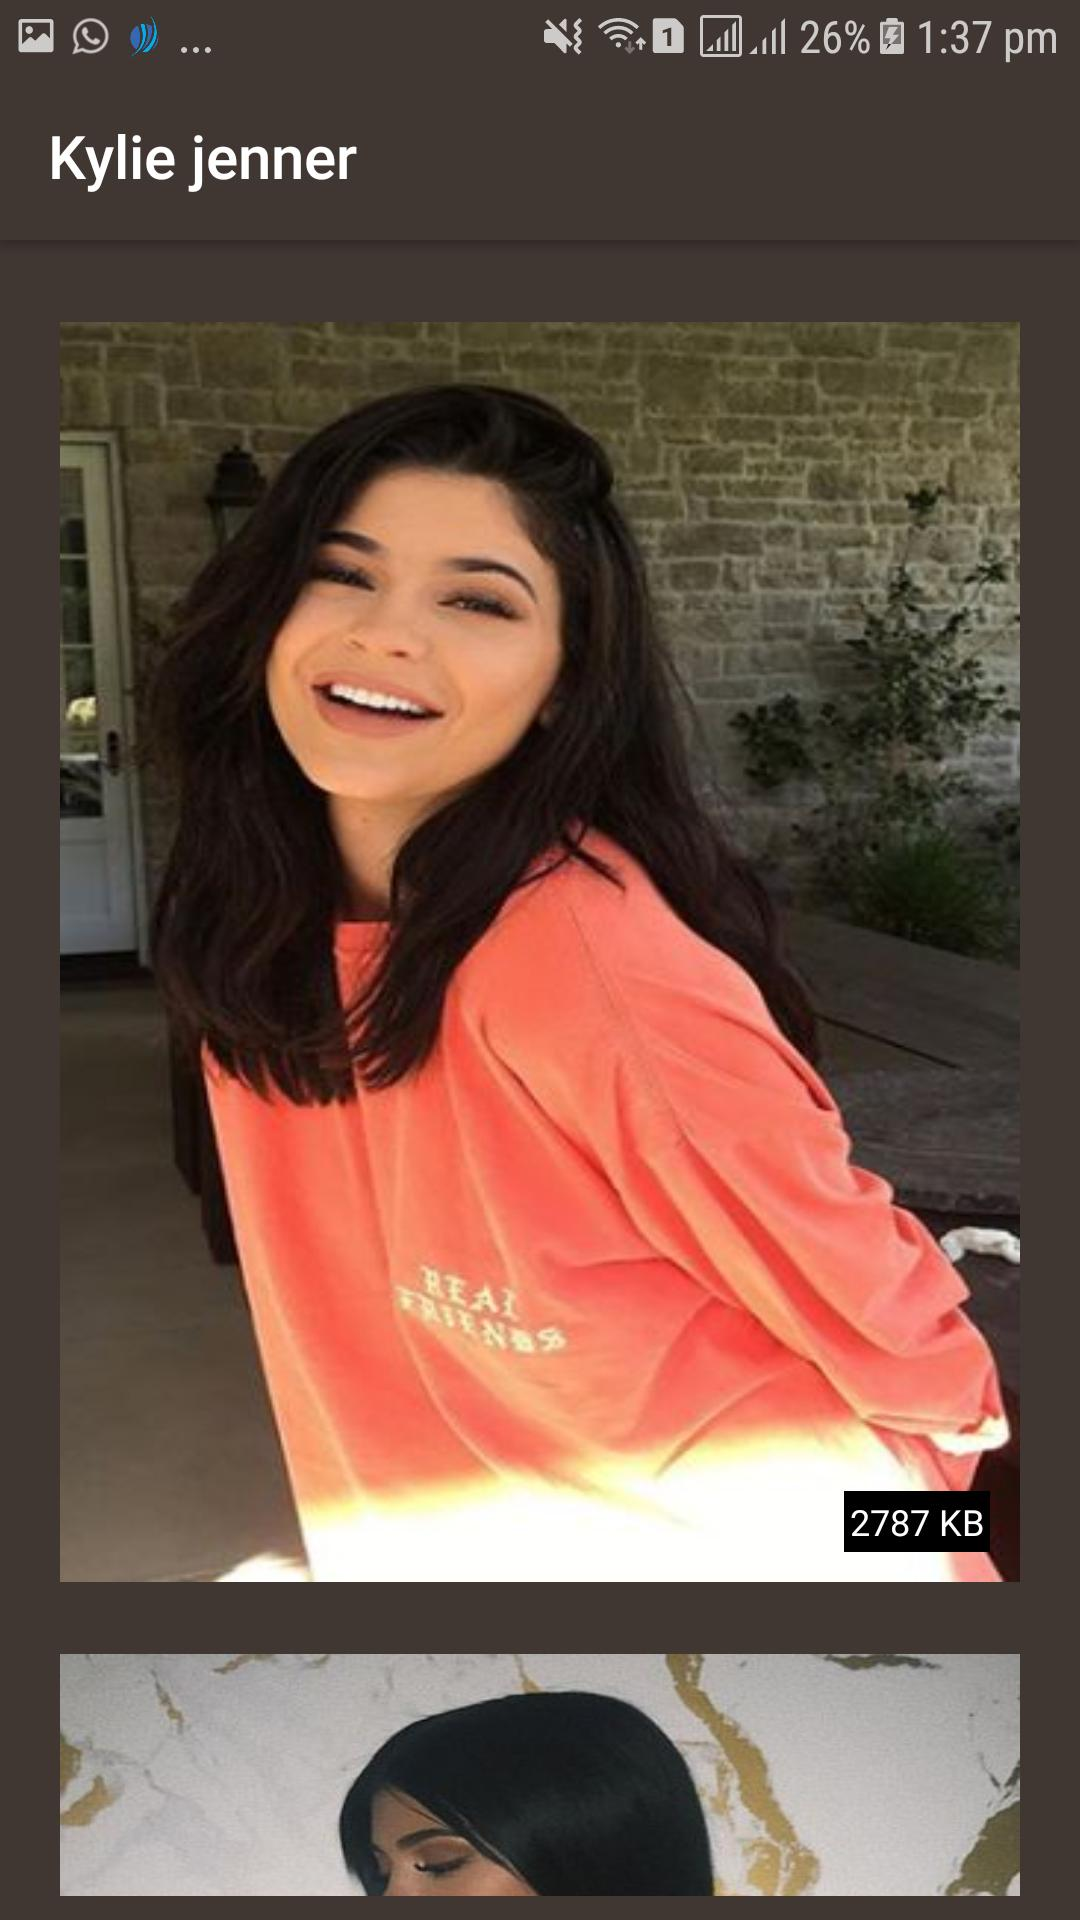 Kylie Jenner Hd Wallpapers And Photos 4k For Android Apk